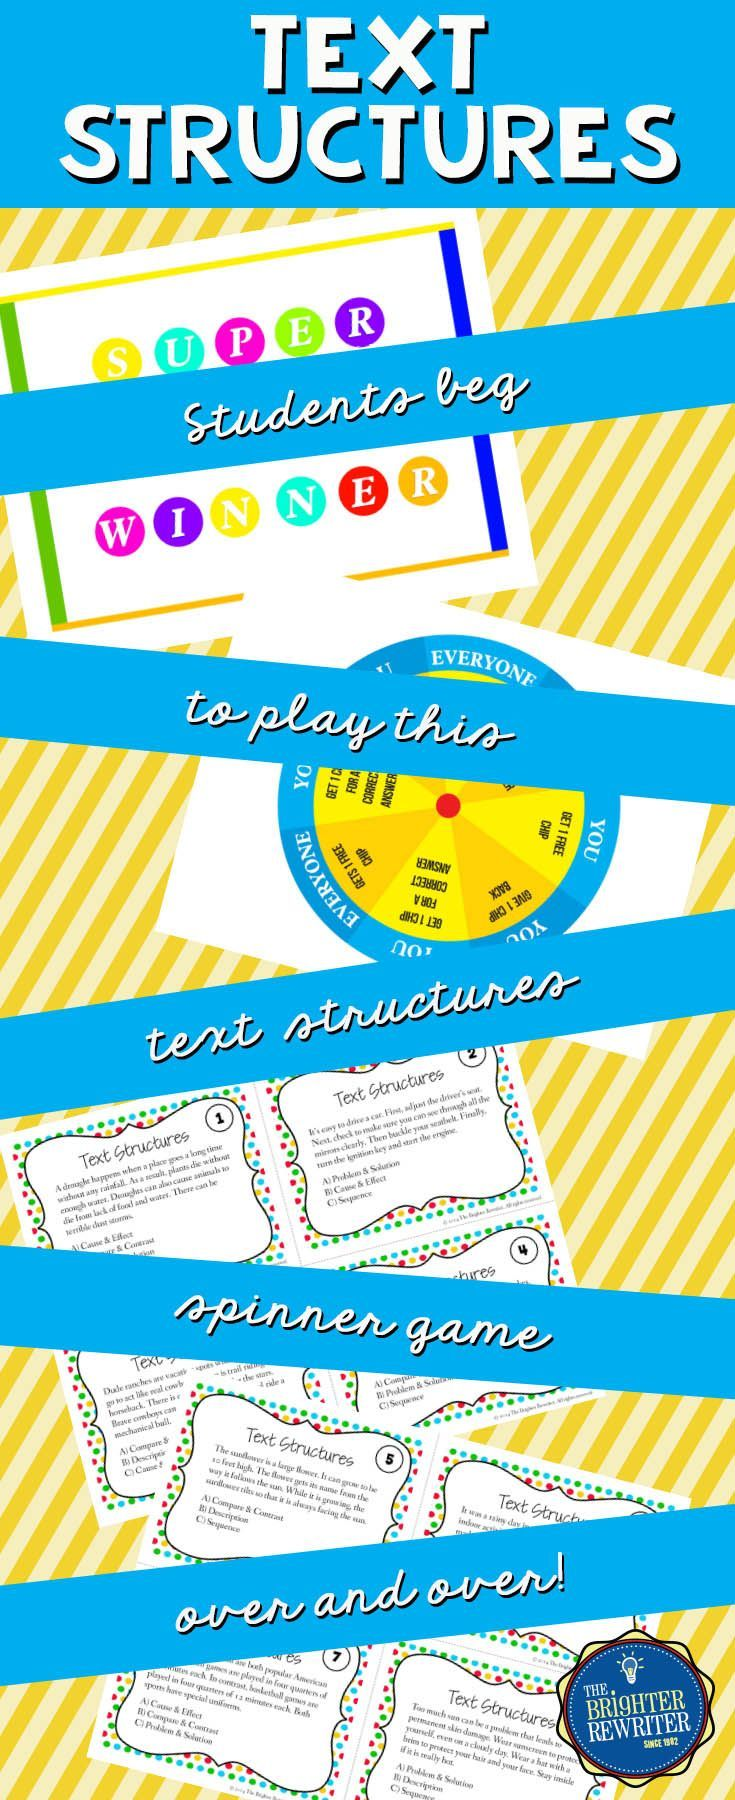 Worksheet Text Structure Worksheets 5th Grade Recetasnaturista